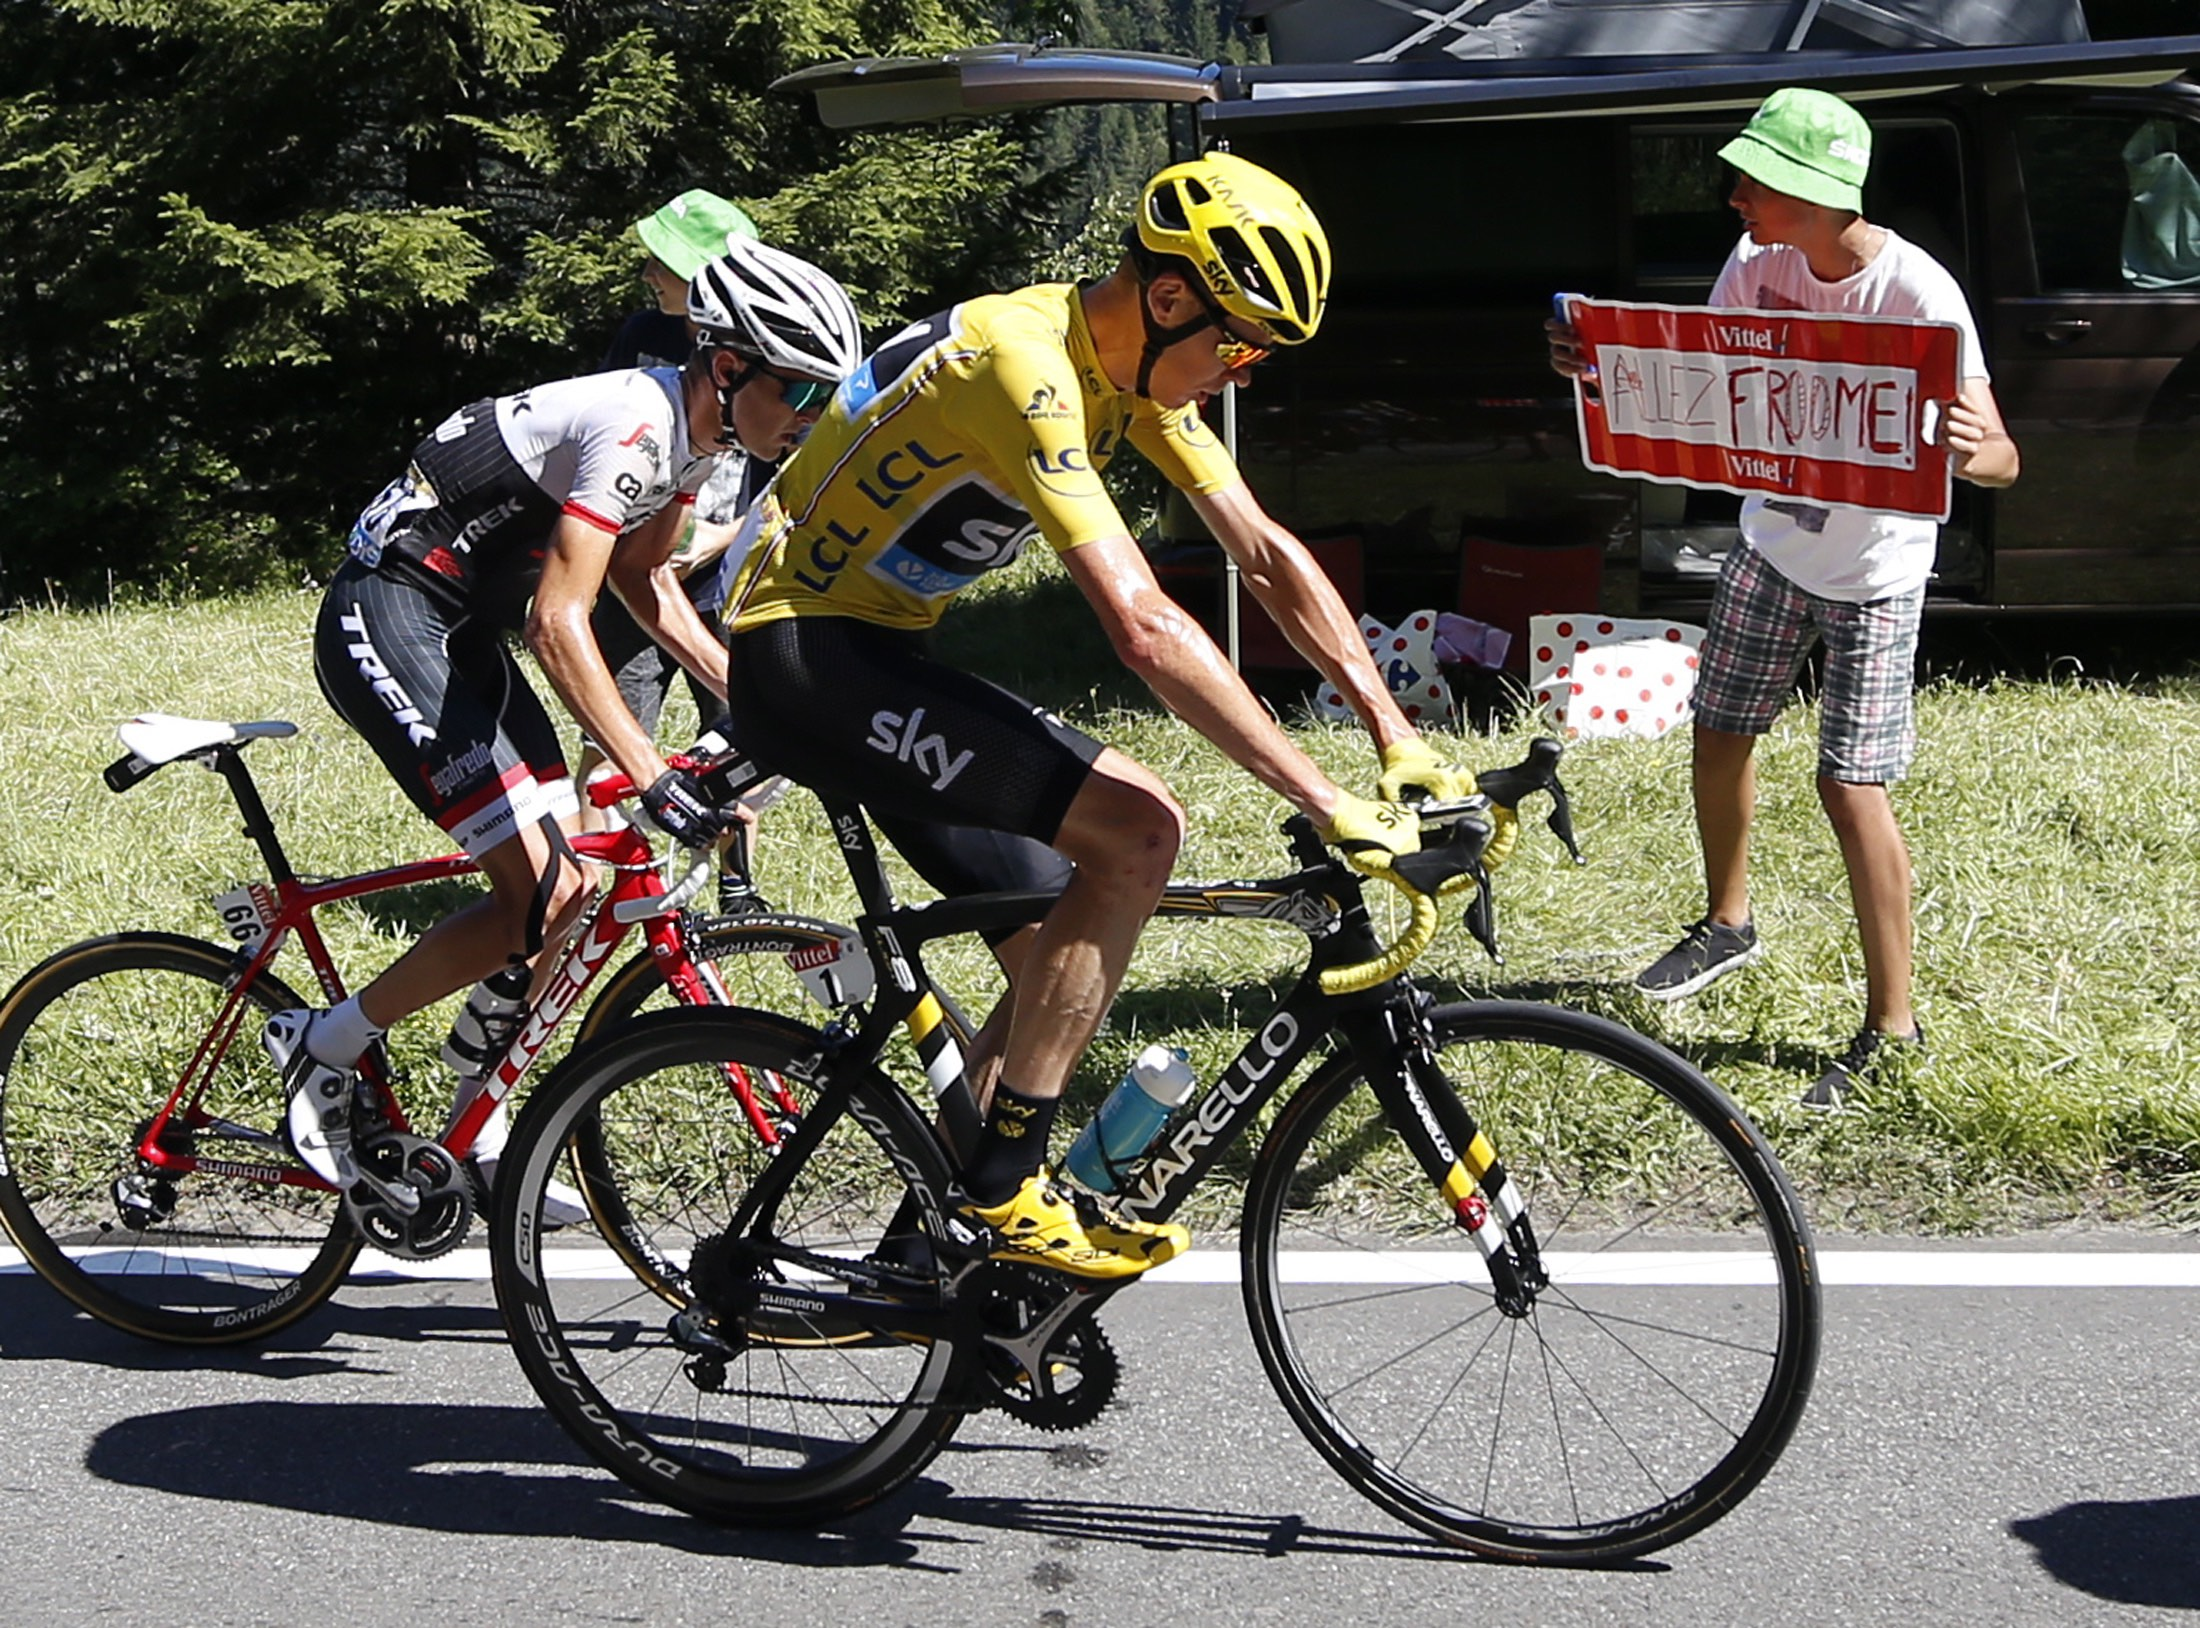 Froome leser data. Foto: Presseport.